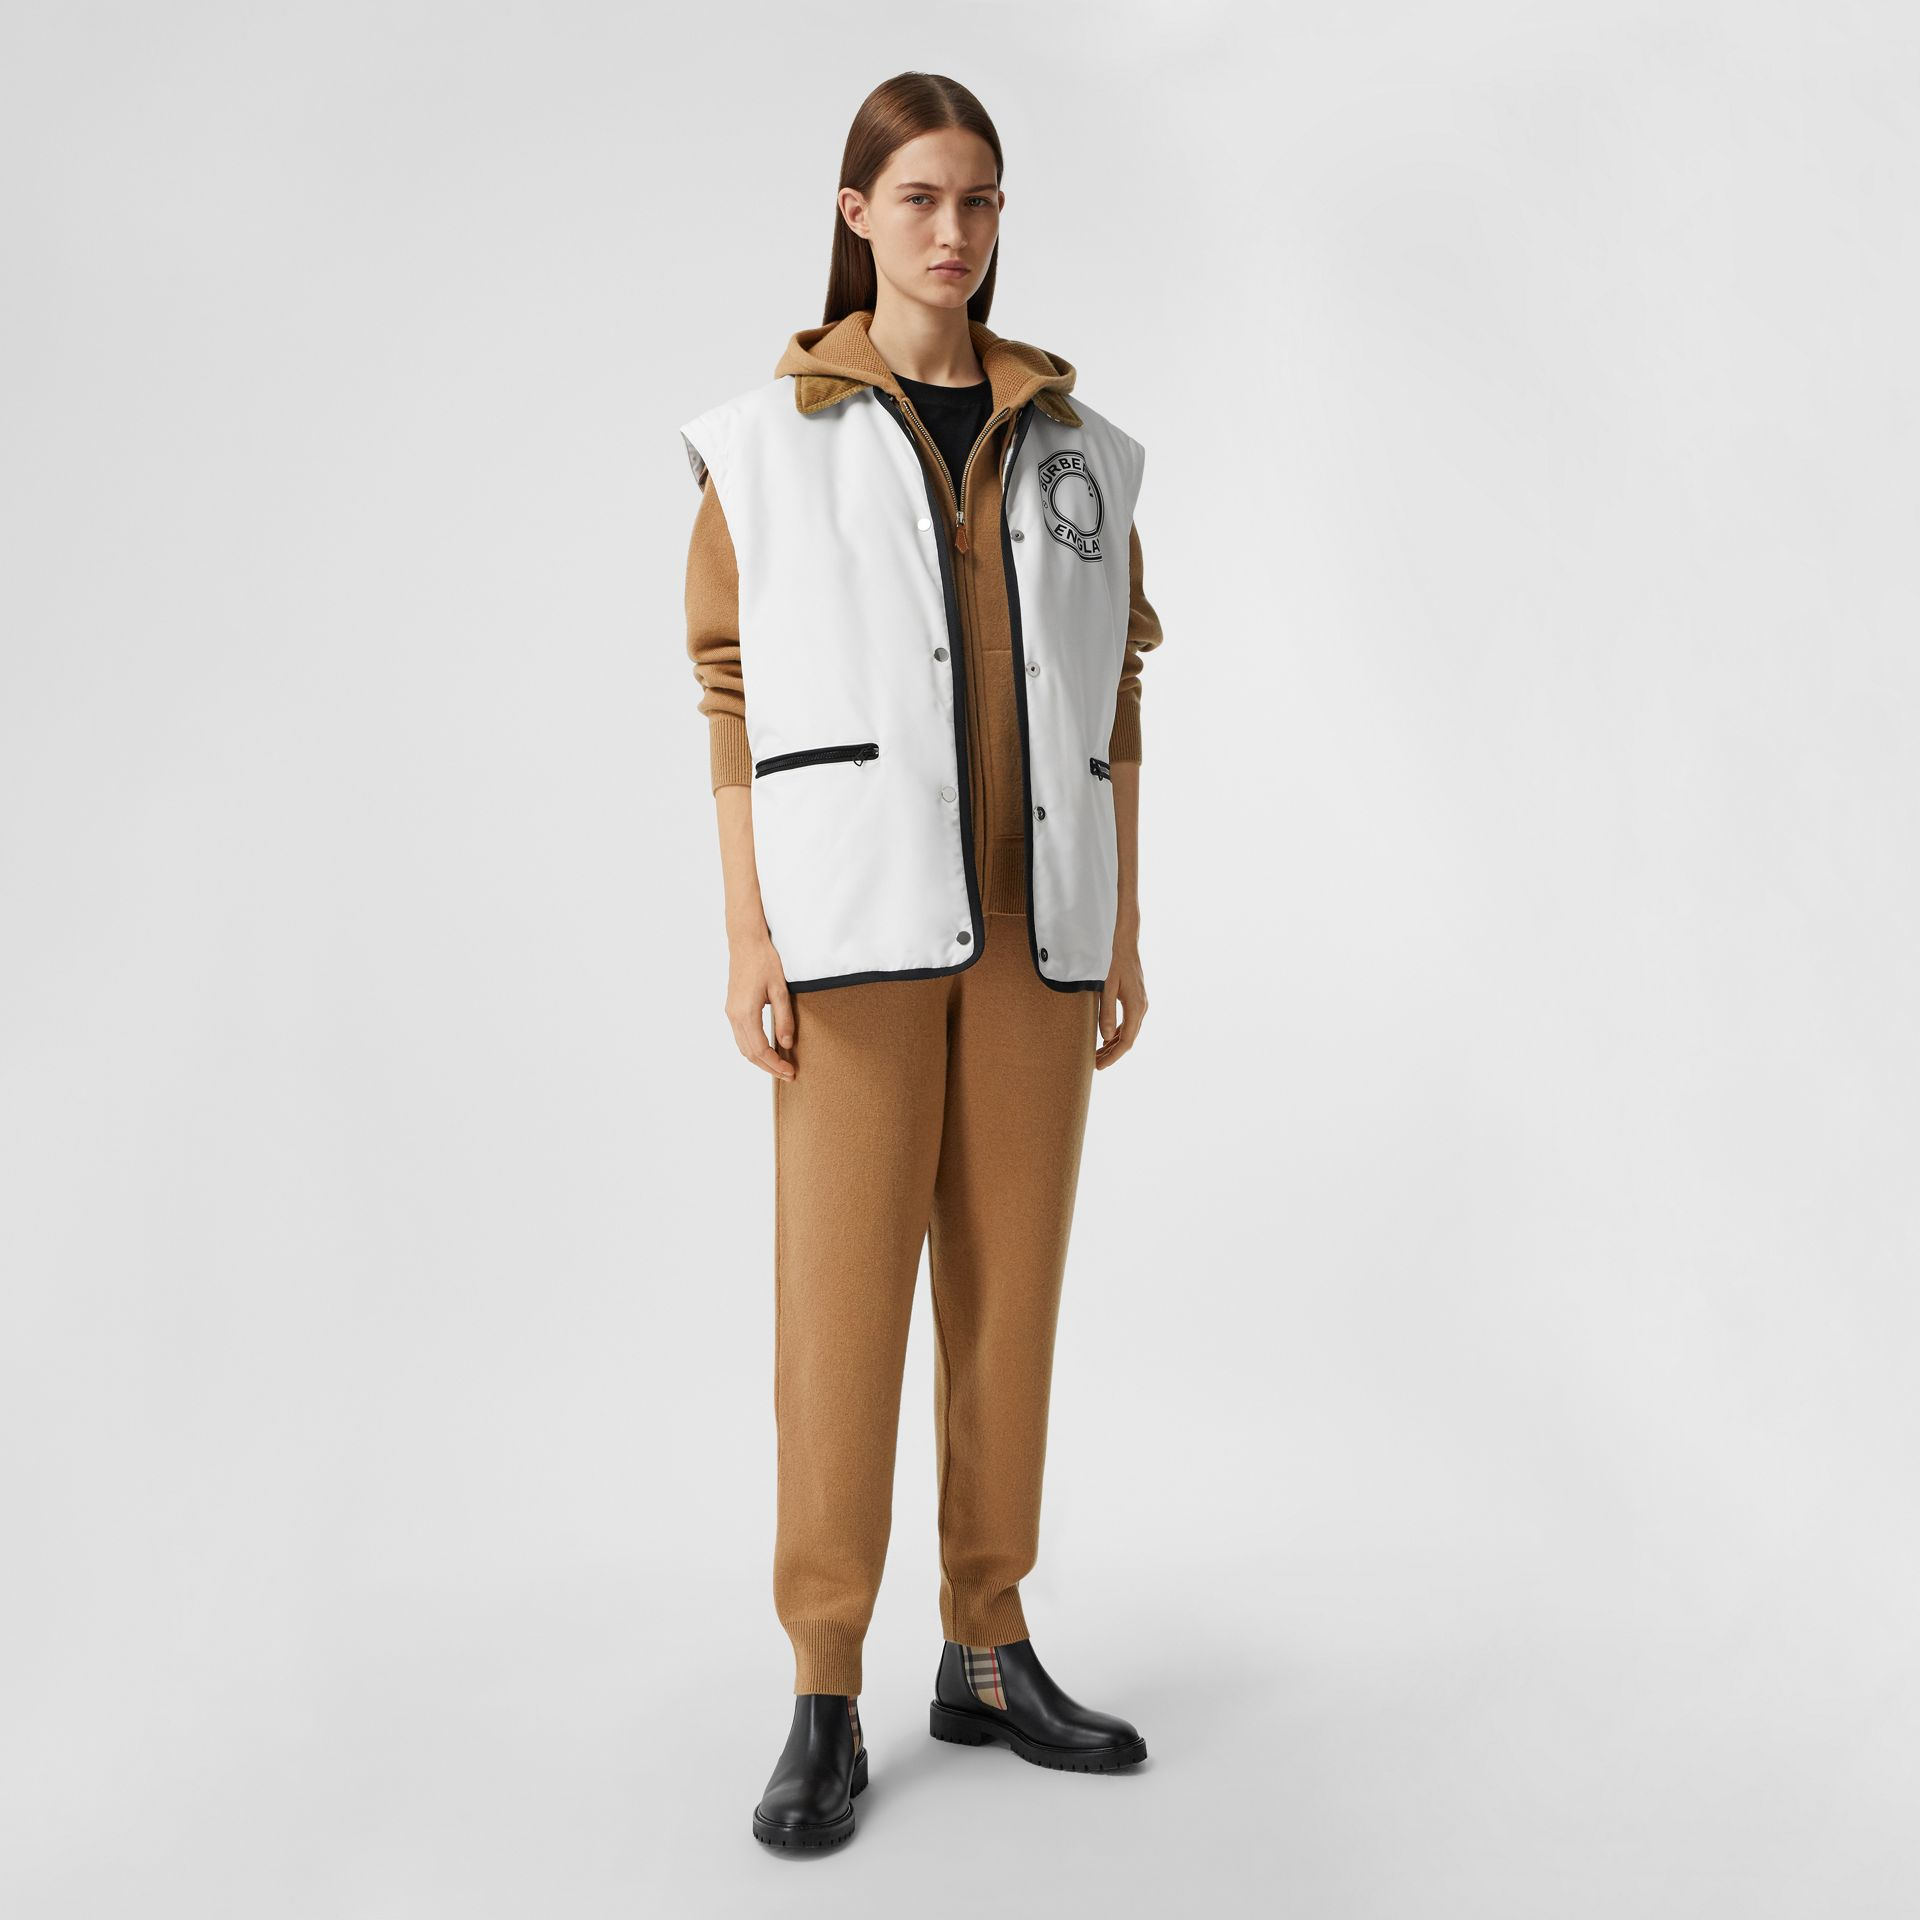 Monogram Motif Cashmere Blend Hooded Top in Camel - Women | Burberry - gallery image 4